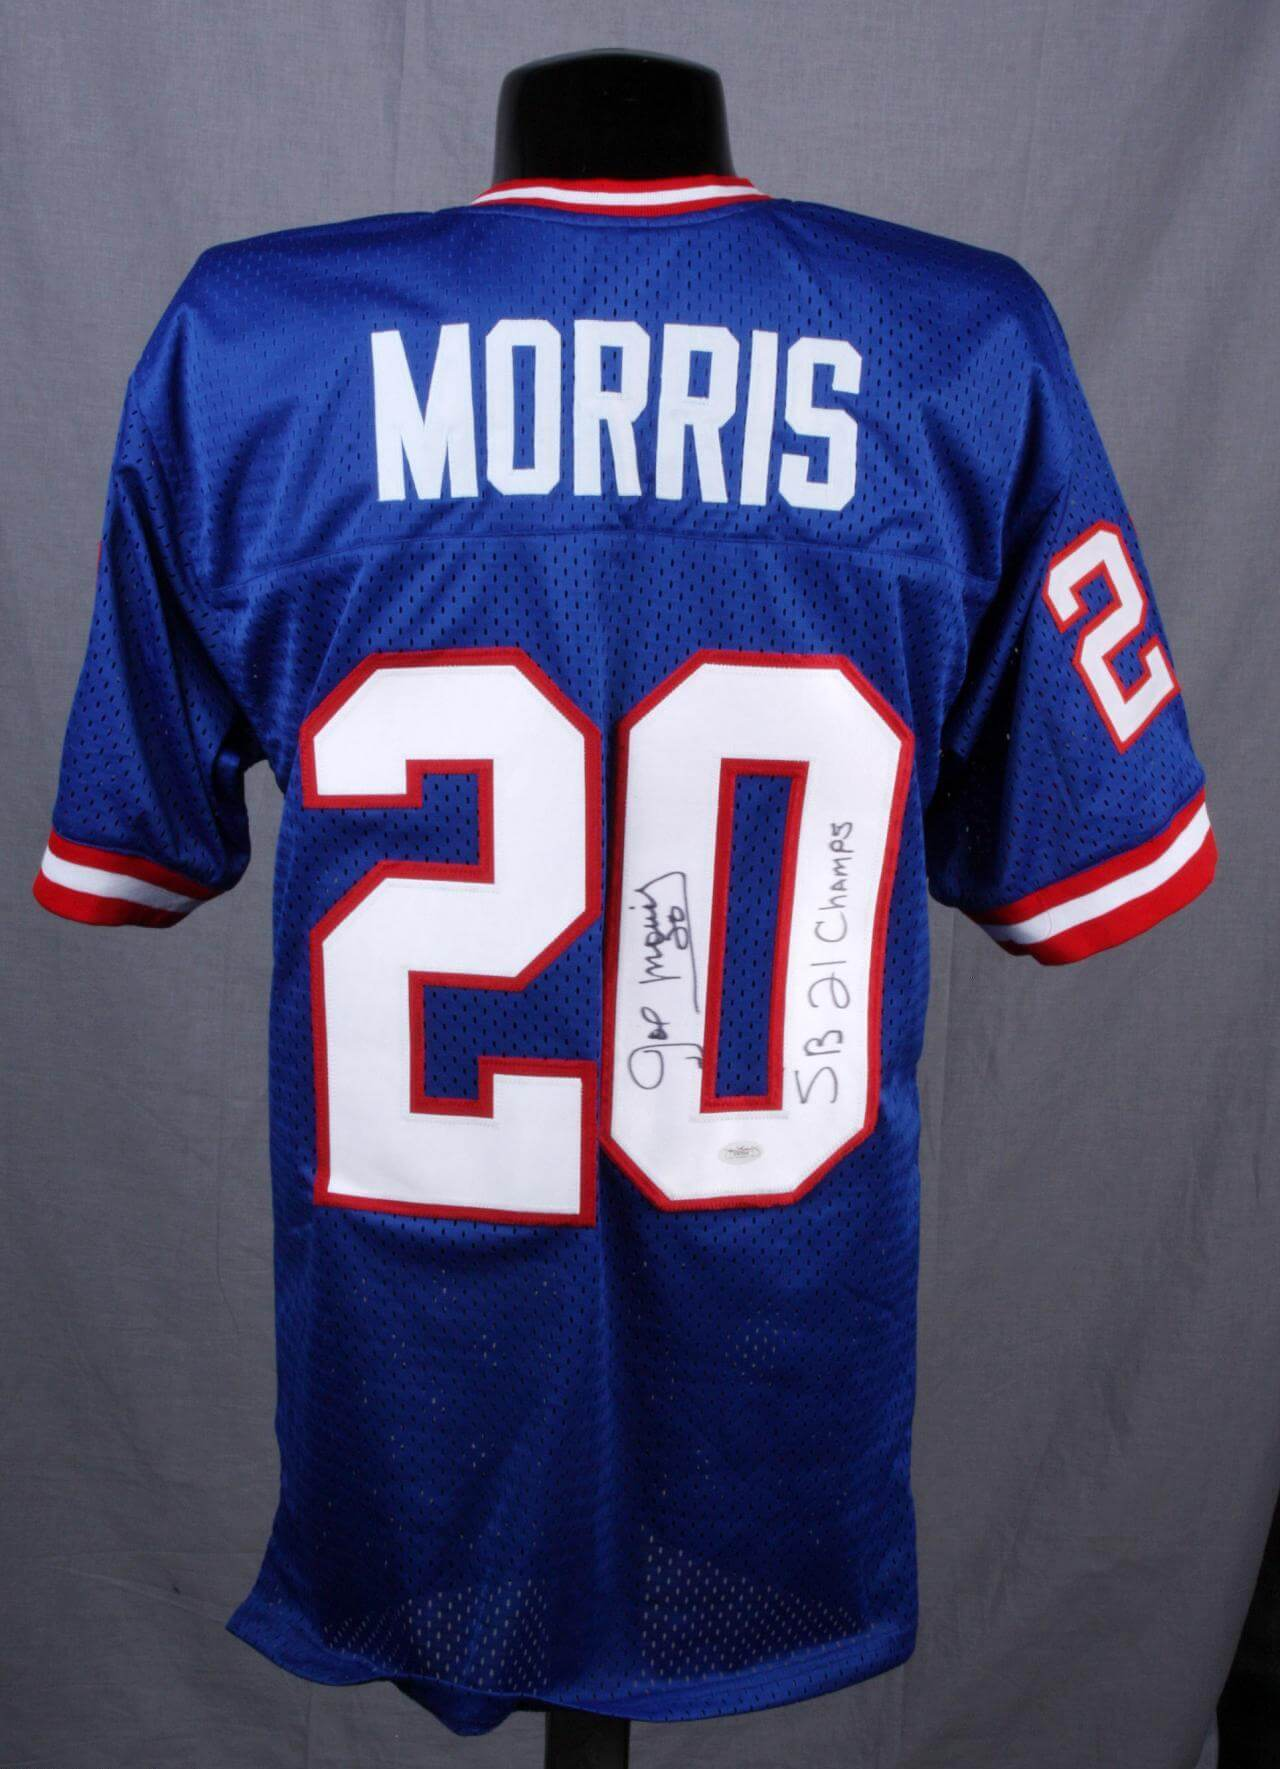 Joe Morris Signed Jersey Giants - COA JSA